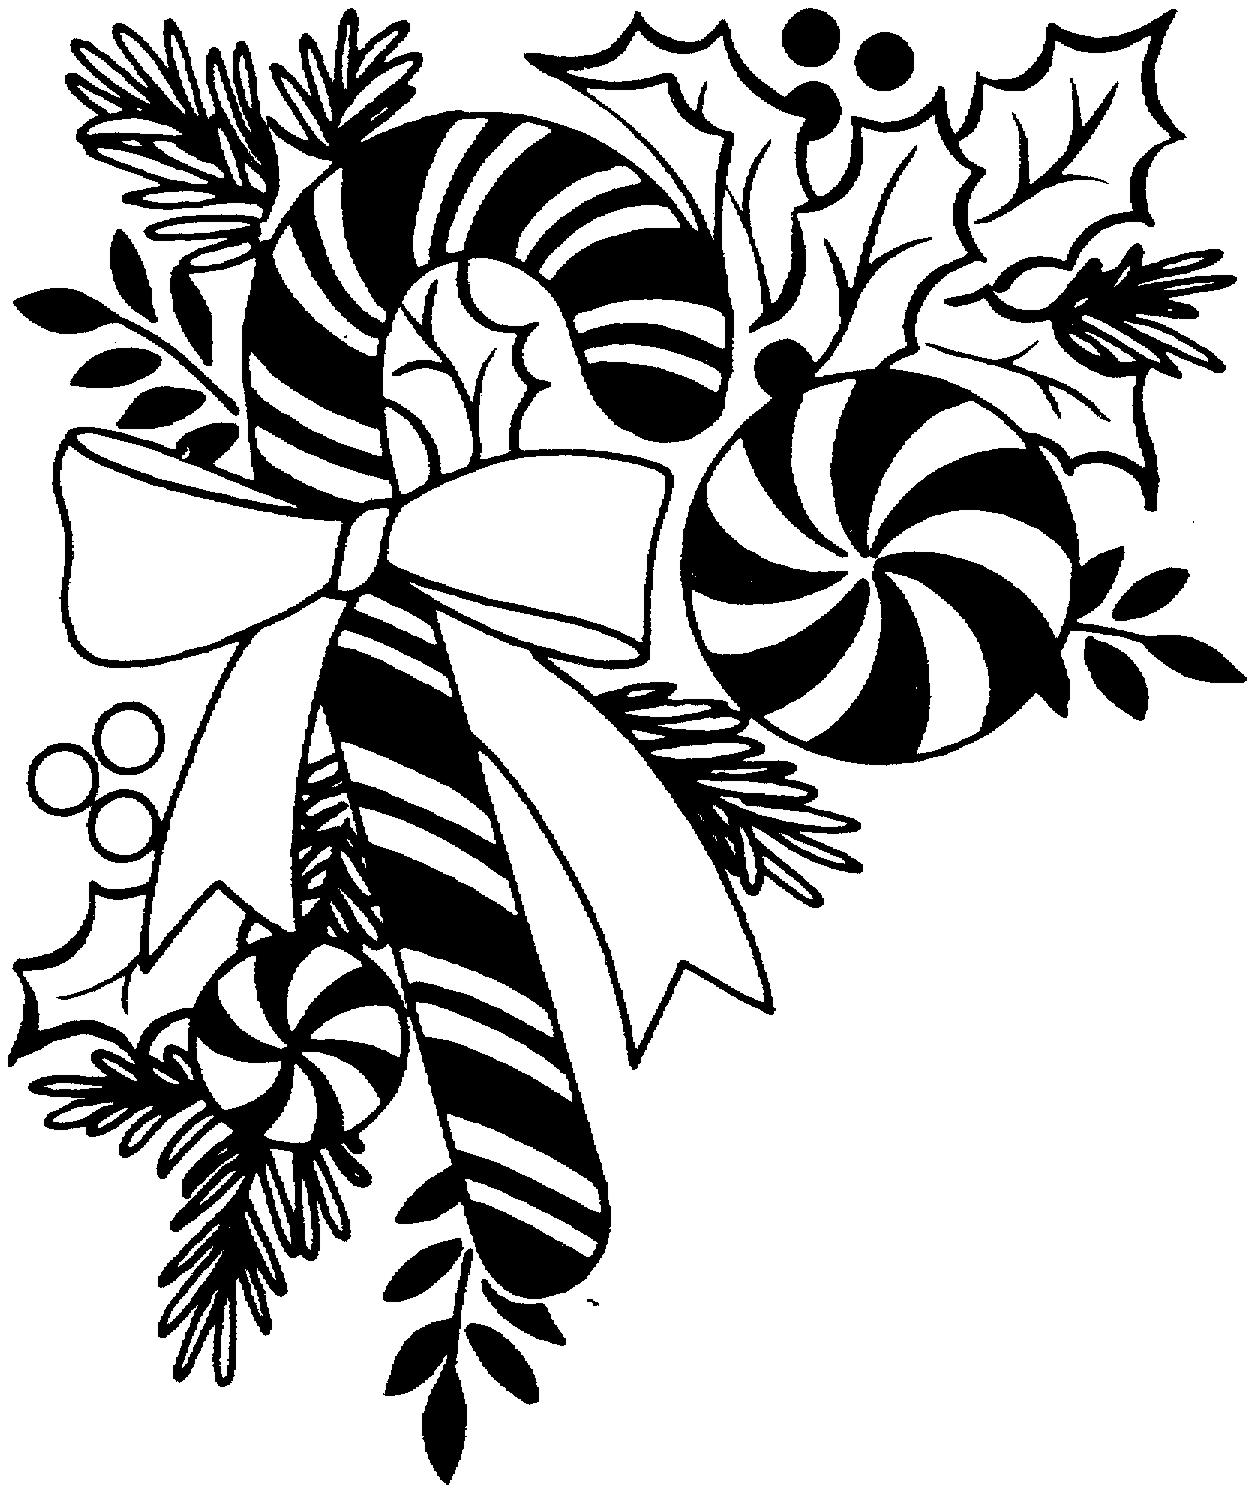 1254x1492 Merry Christmas Clipart Black And White